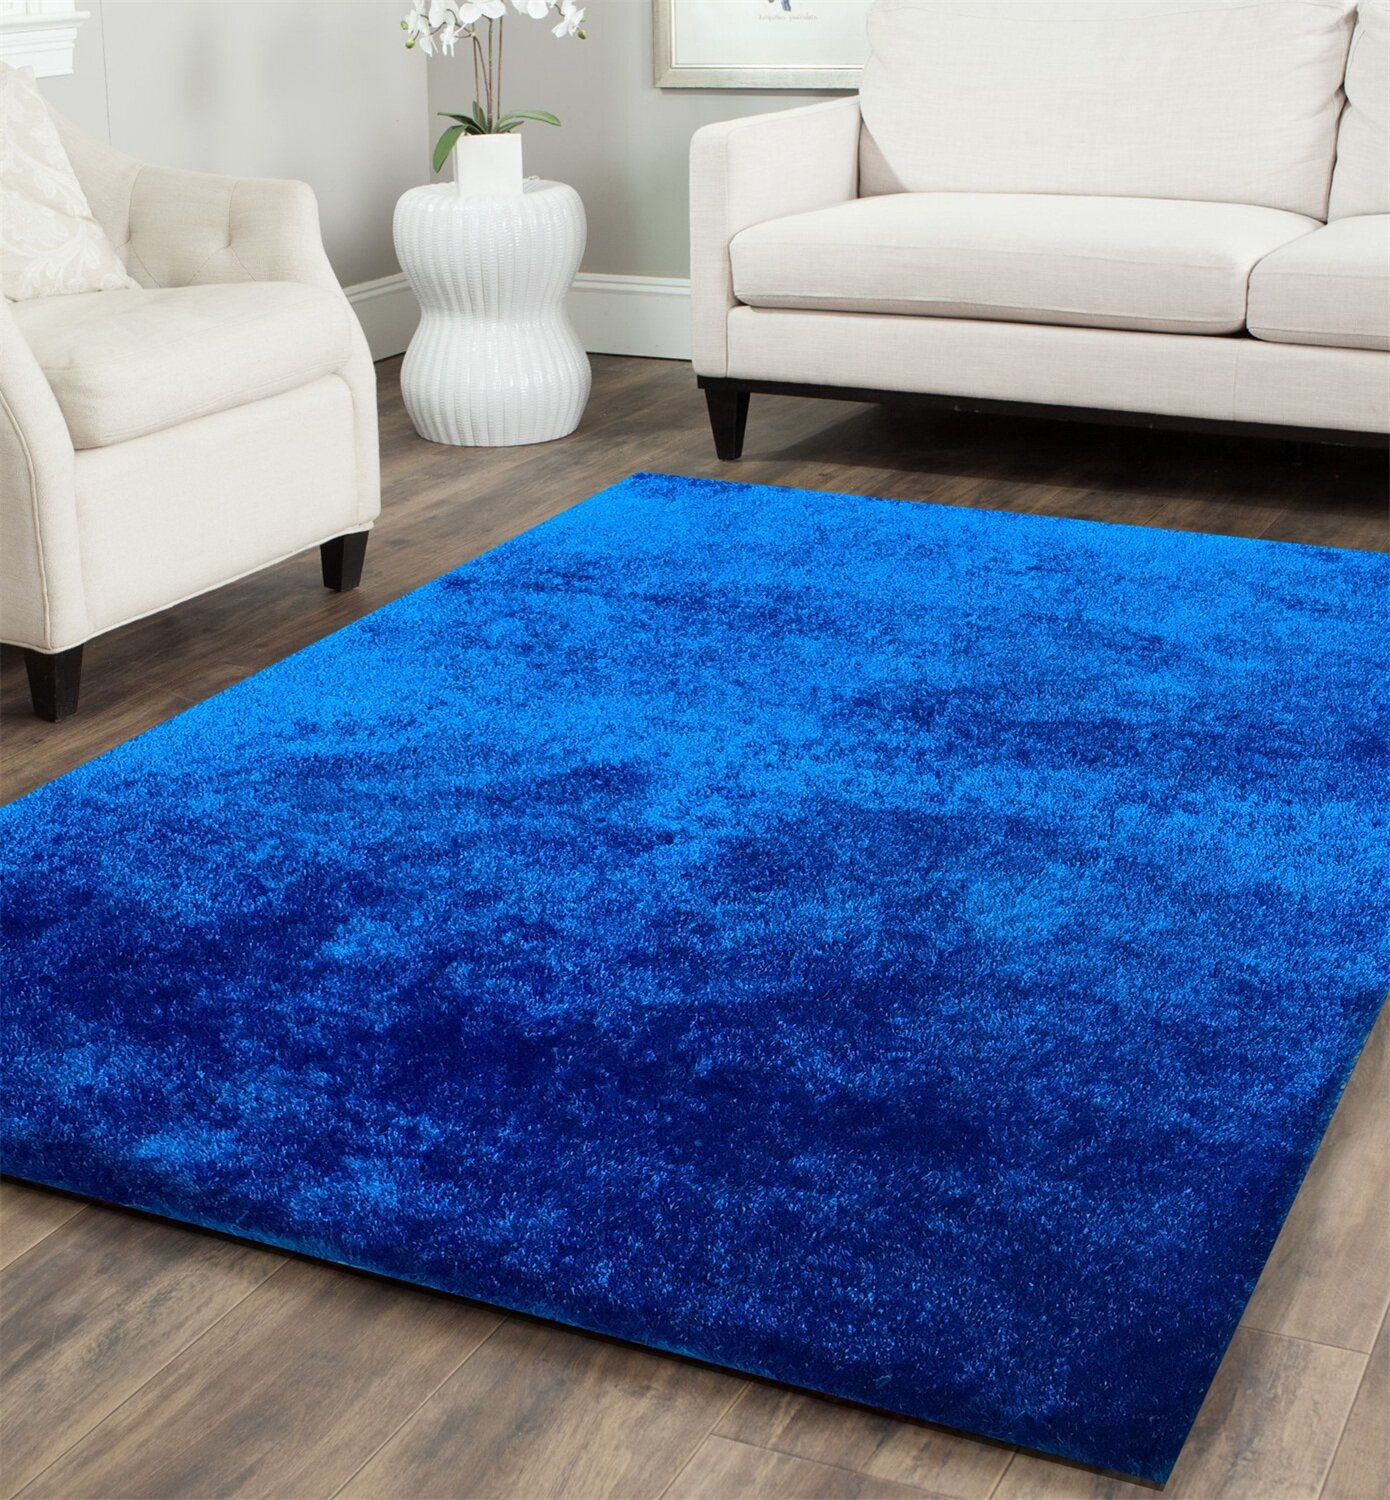 Polyester Wrought Studio Area Rugs You Ll Love In 2021 Wayfair